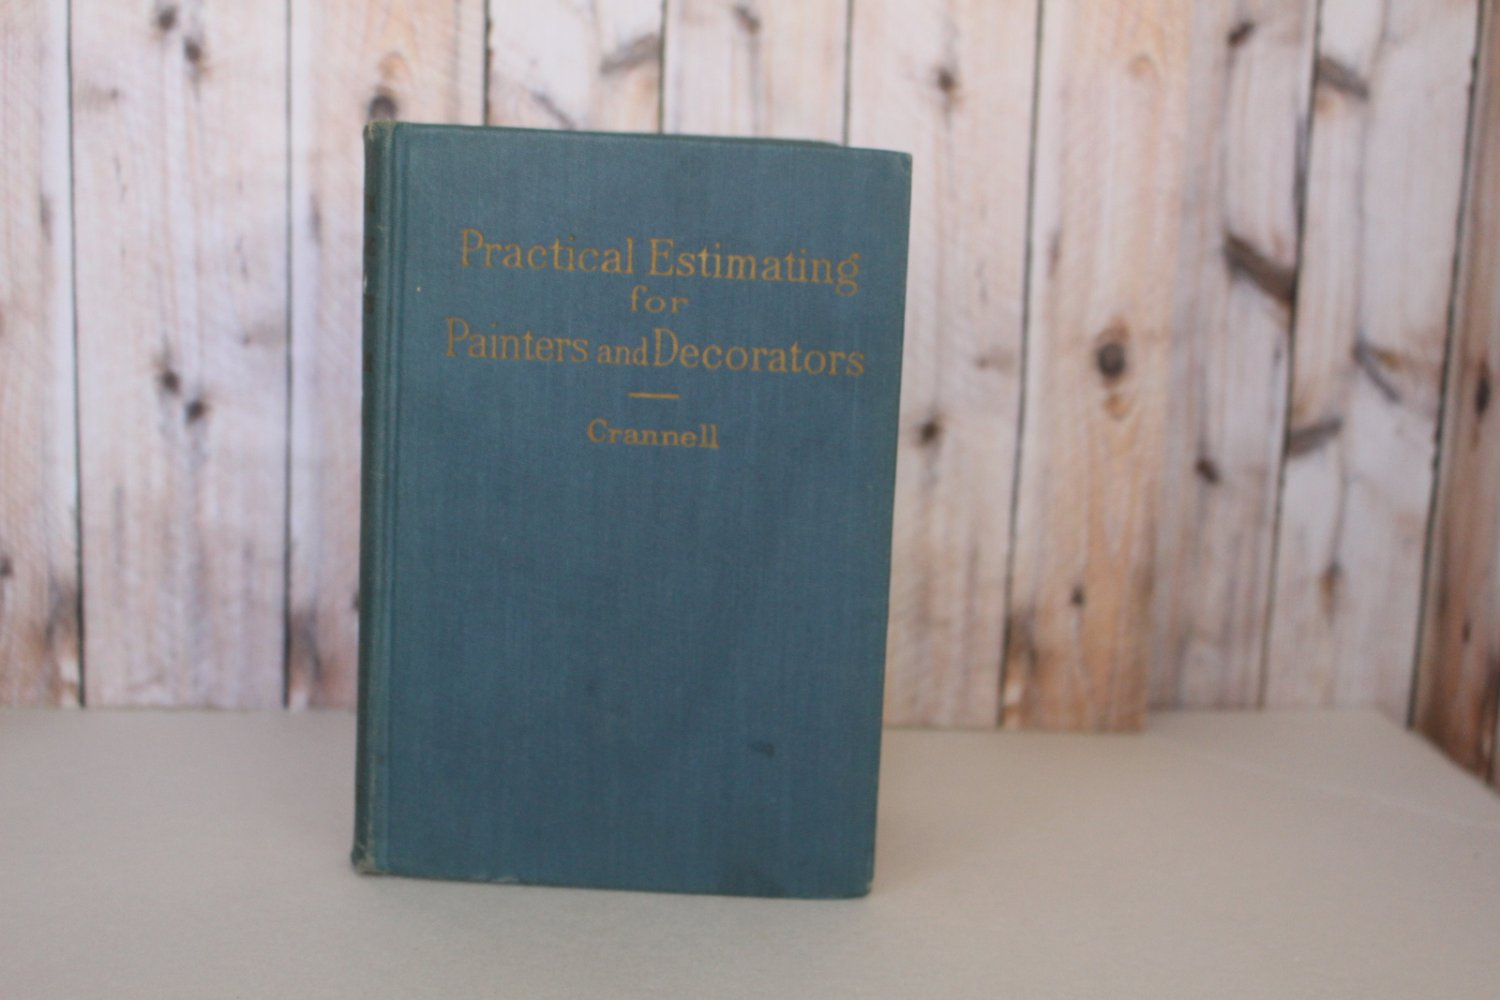 Practical Estimating for Painters and Decorators Hard Cover 1948 Vintage Book